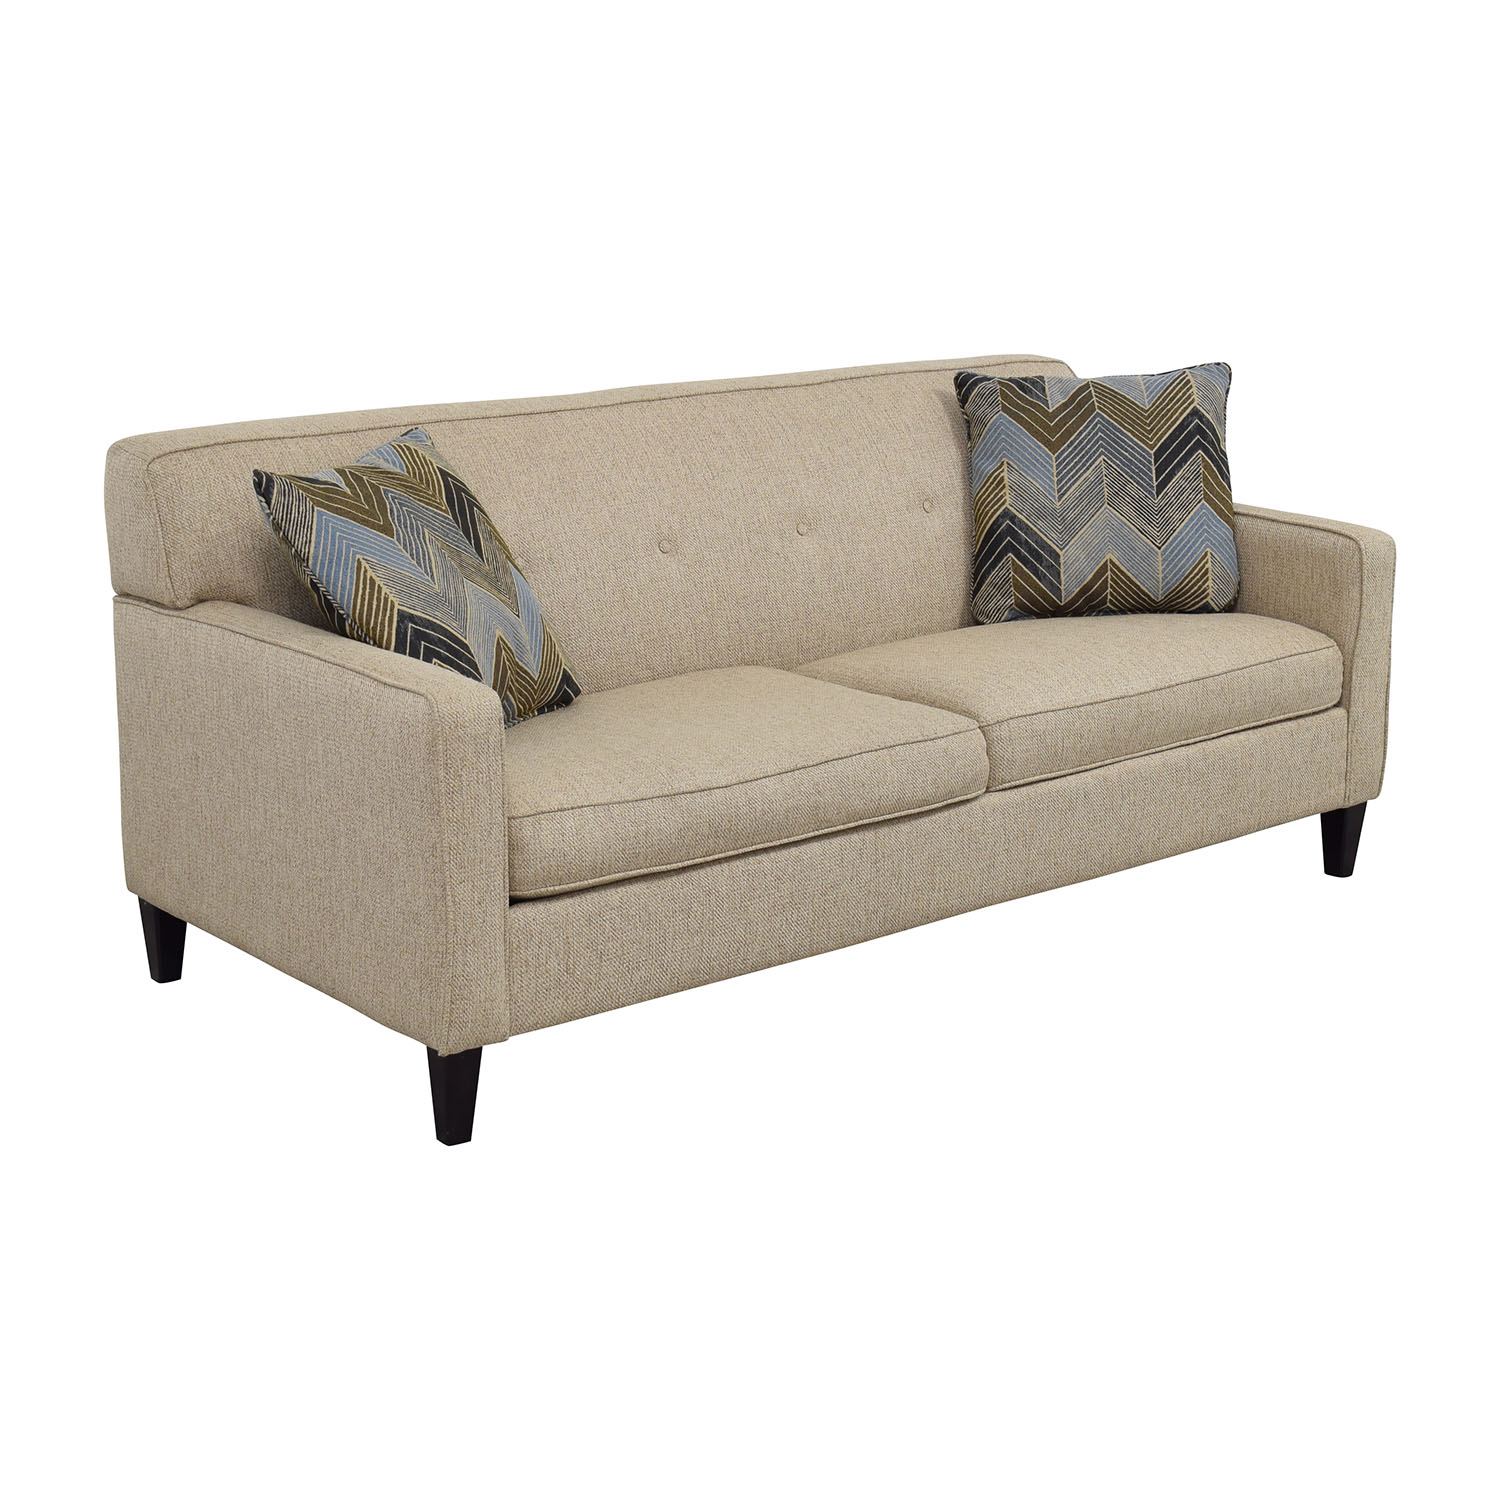 Raymour & Flanigan Raymour & Flanigan Tan Maddox Sofa nyc